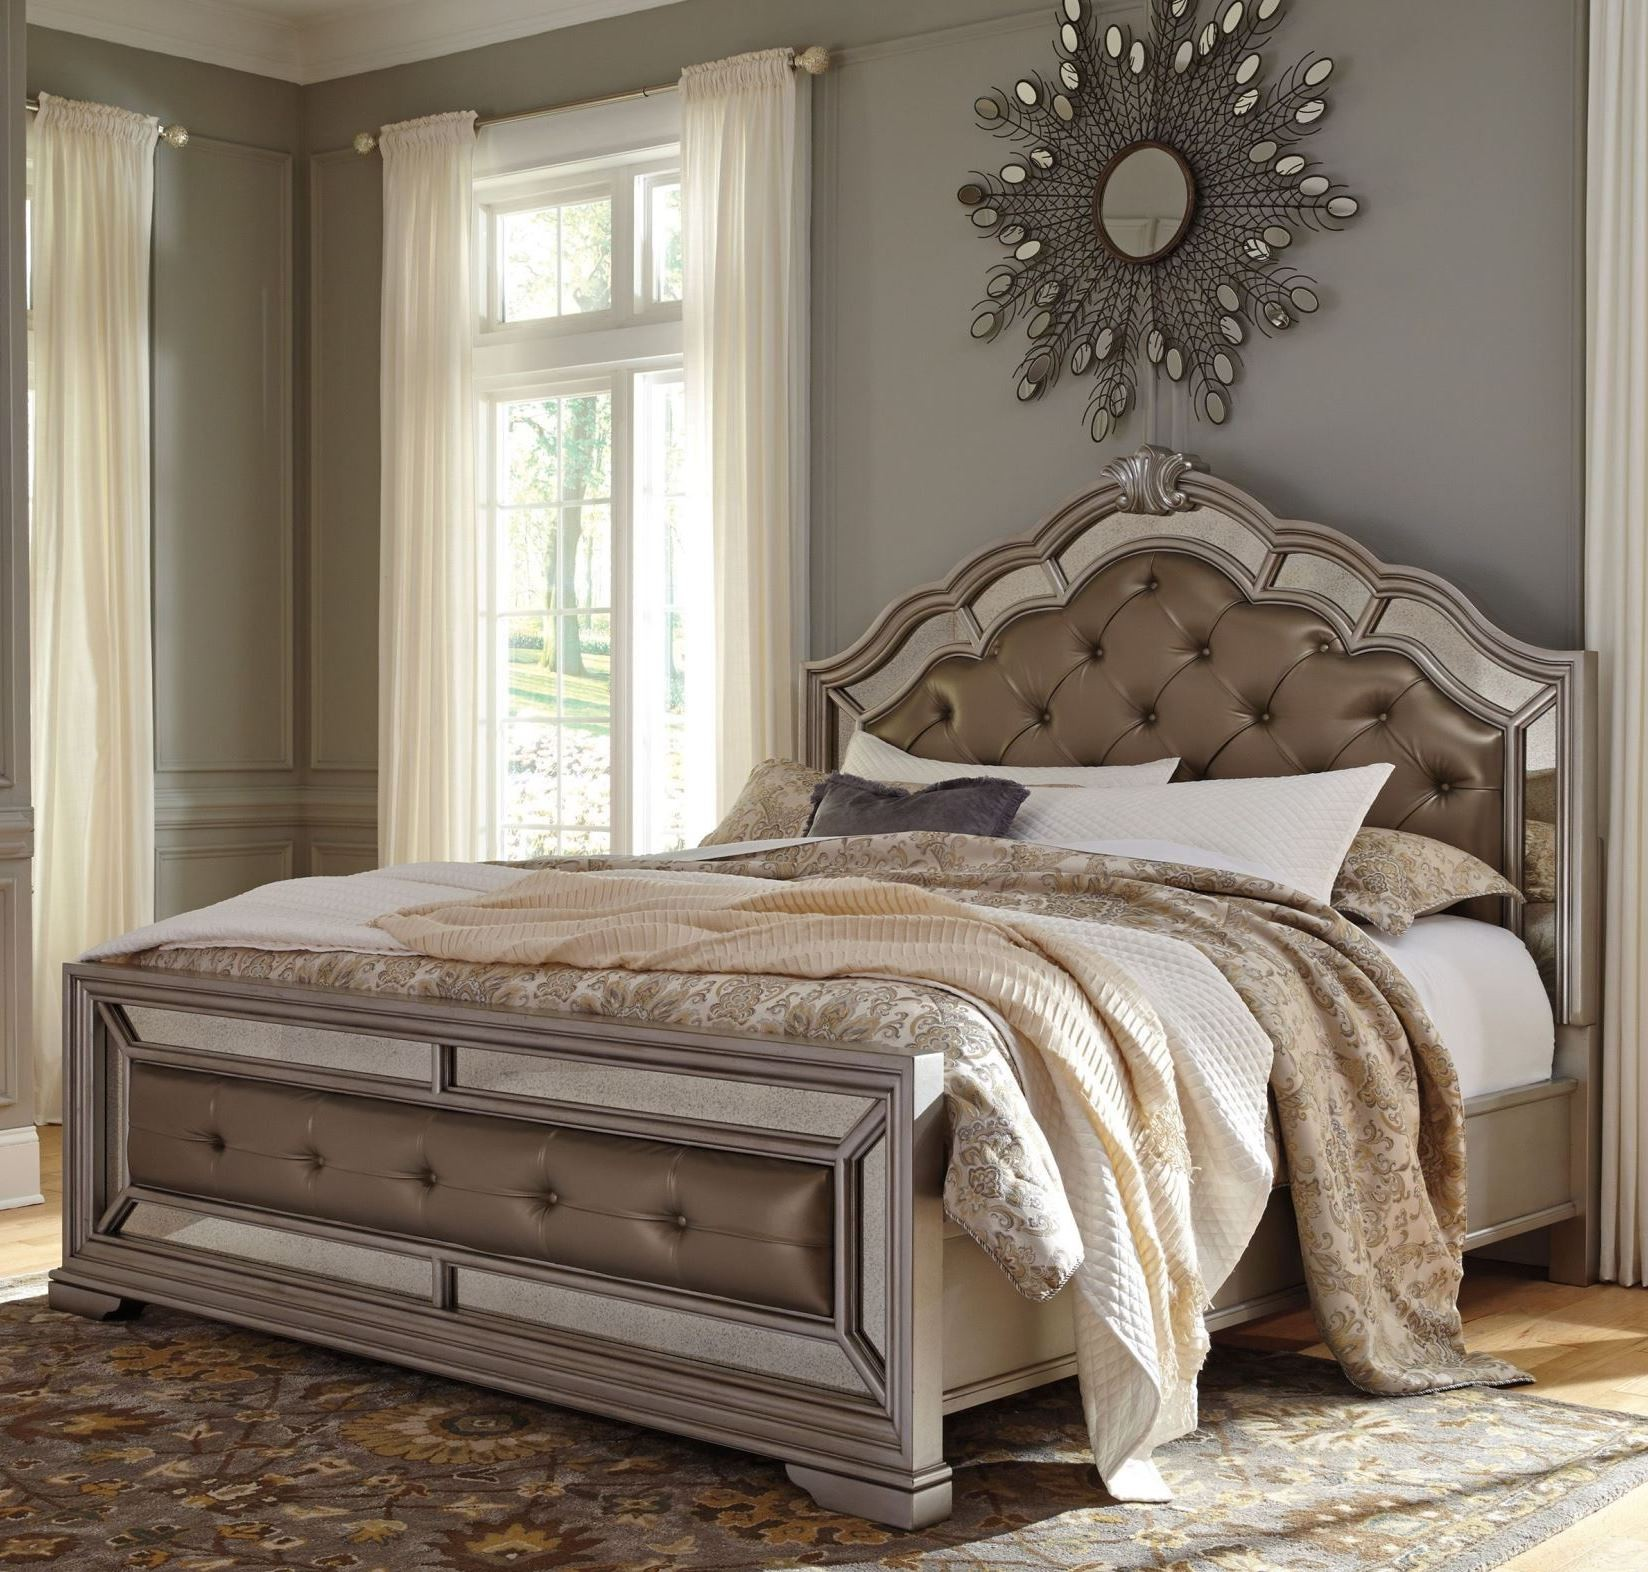 Bedroom Furniture: Birlanny Silver Upholstered Panel Bedroom Set From Ashley